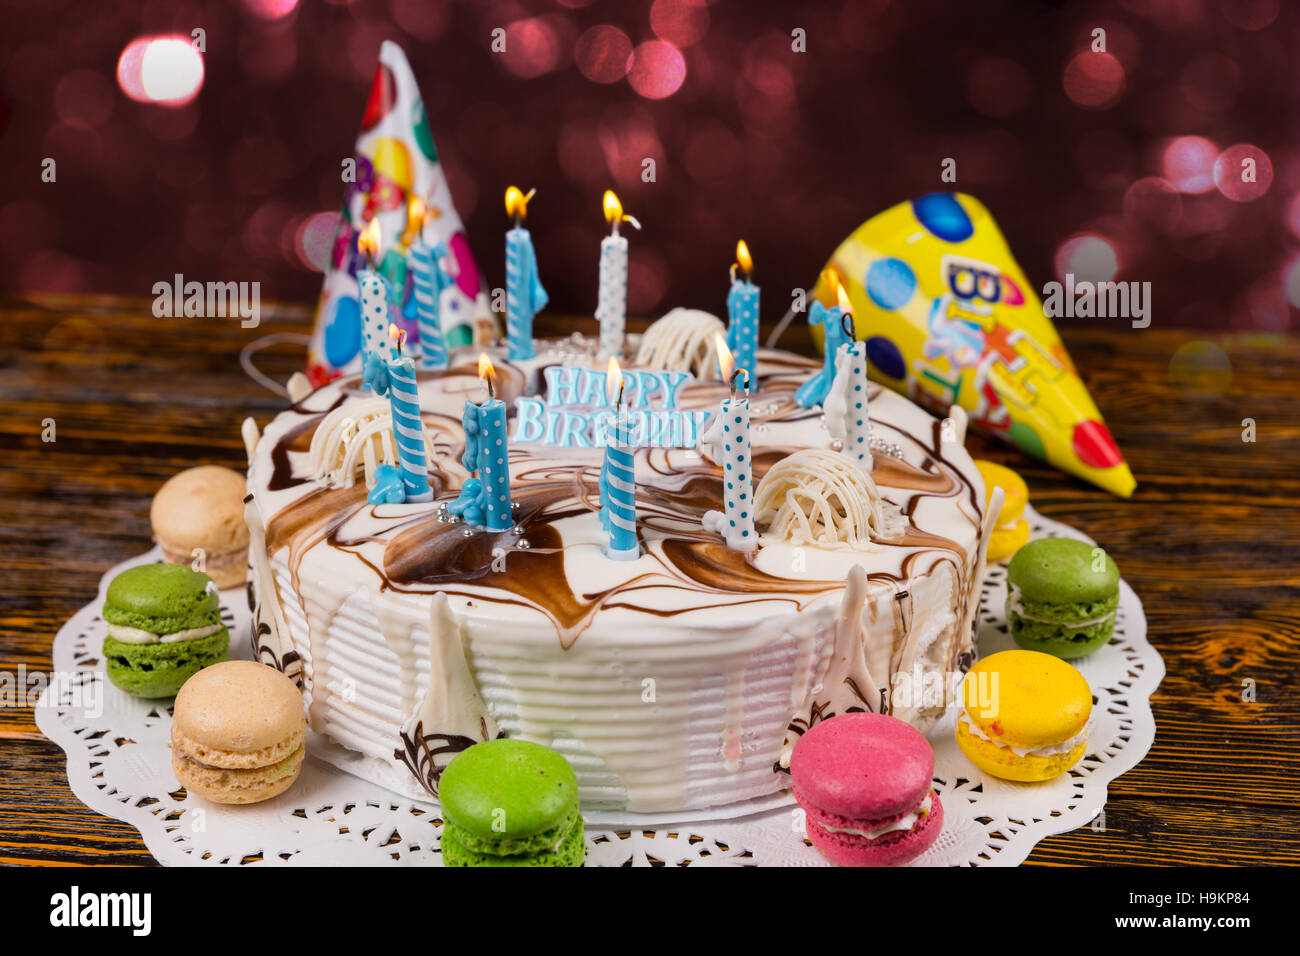 Homemade Birthday Cake With Lots Of Burning Candles On White Napkin